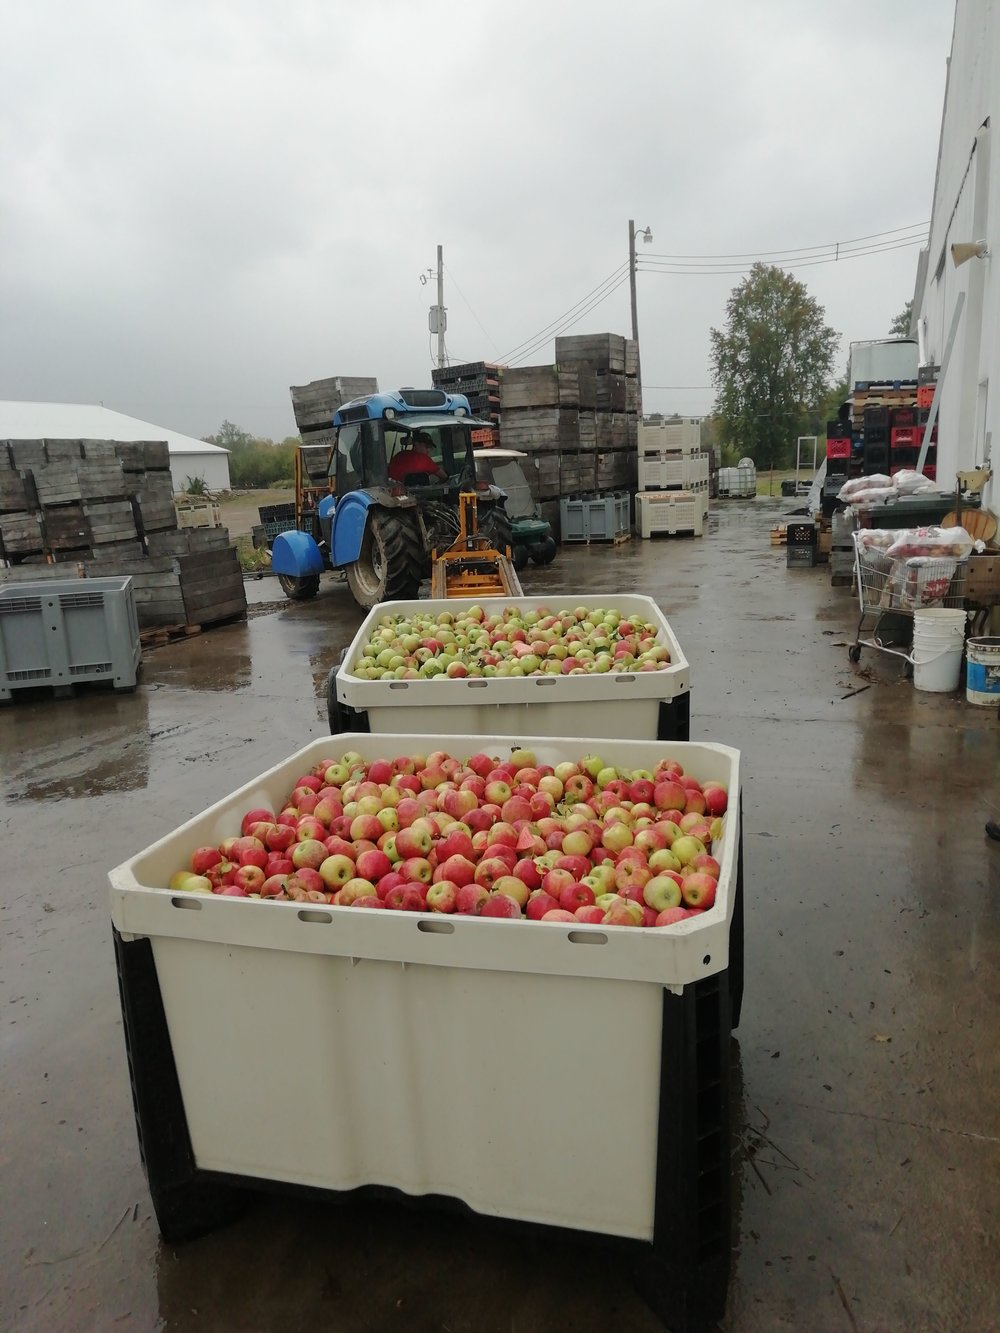 JMT US_CA Bin 730_pick up apples.jpg